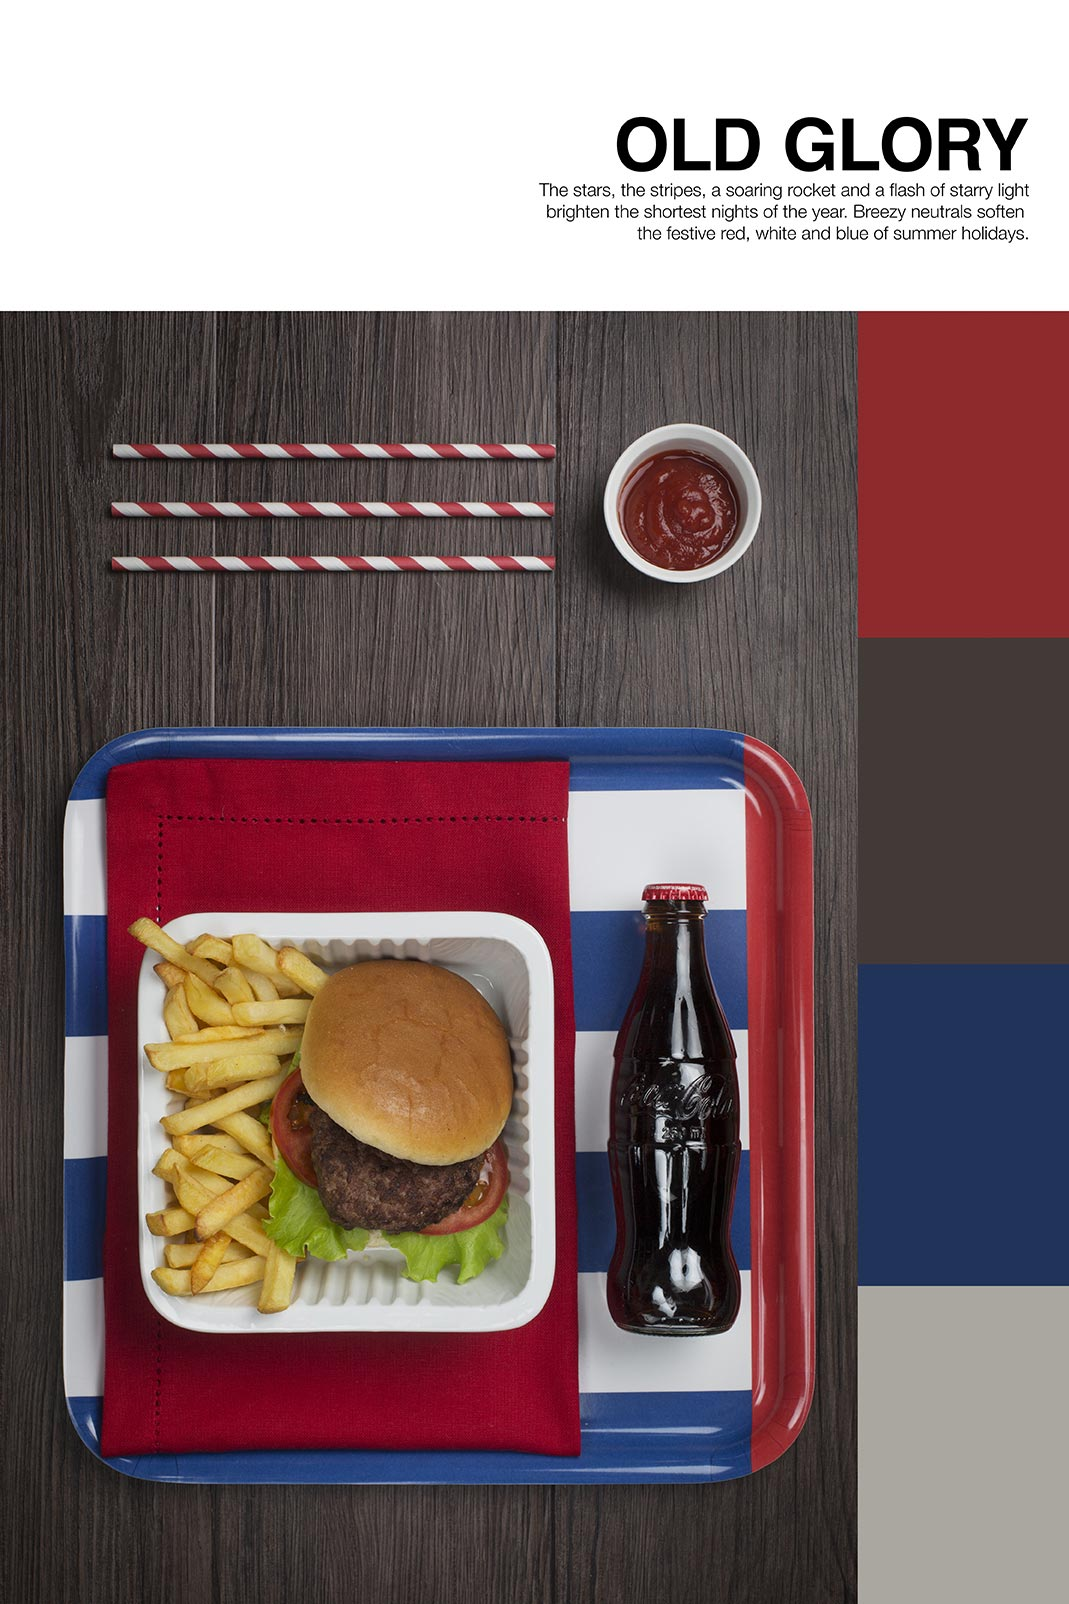 isabella-vacchi-color-coded-food-photography-1